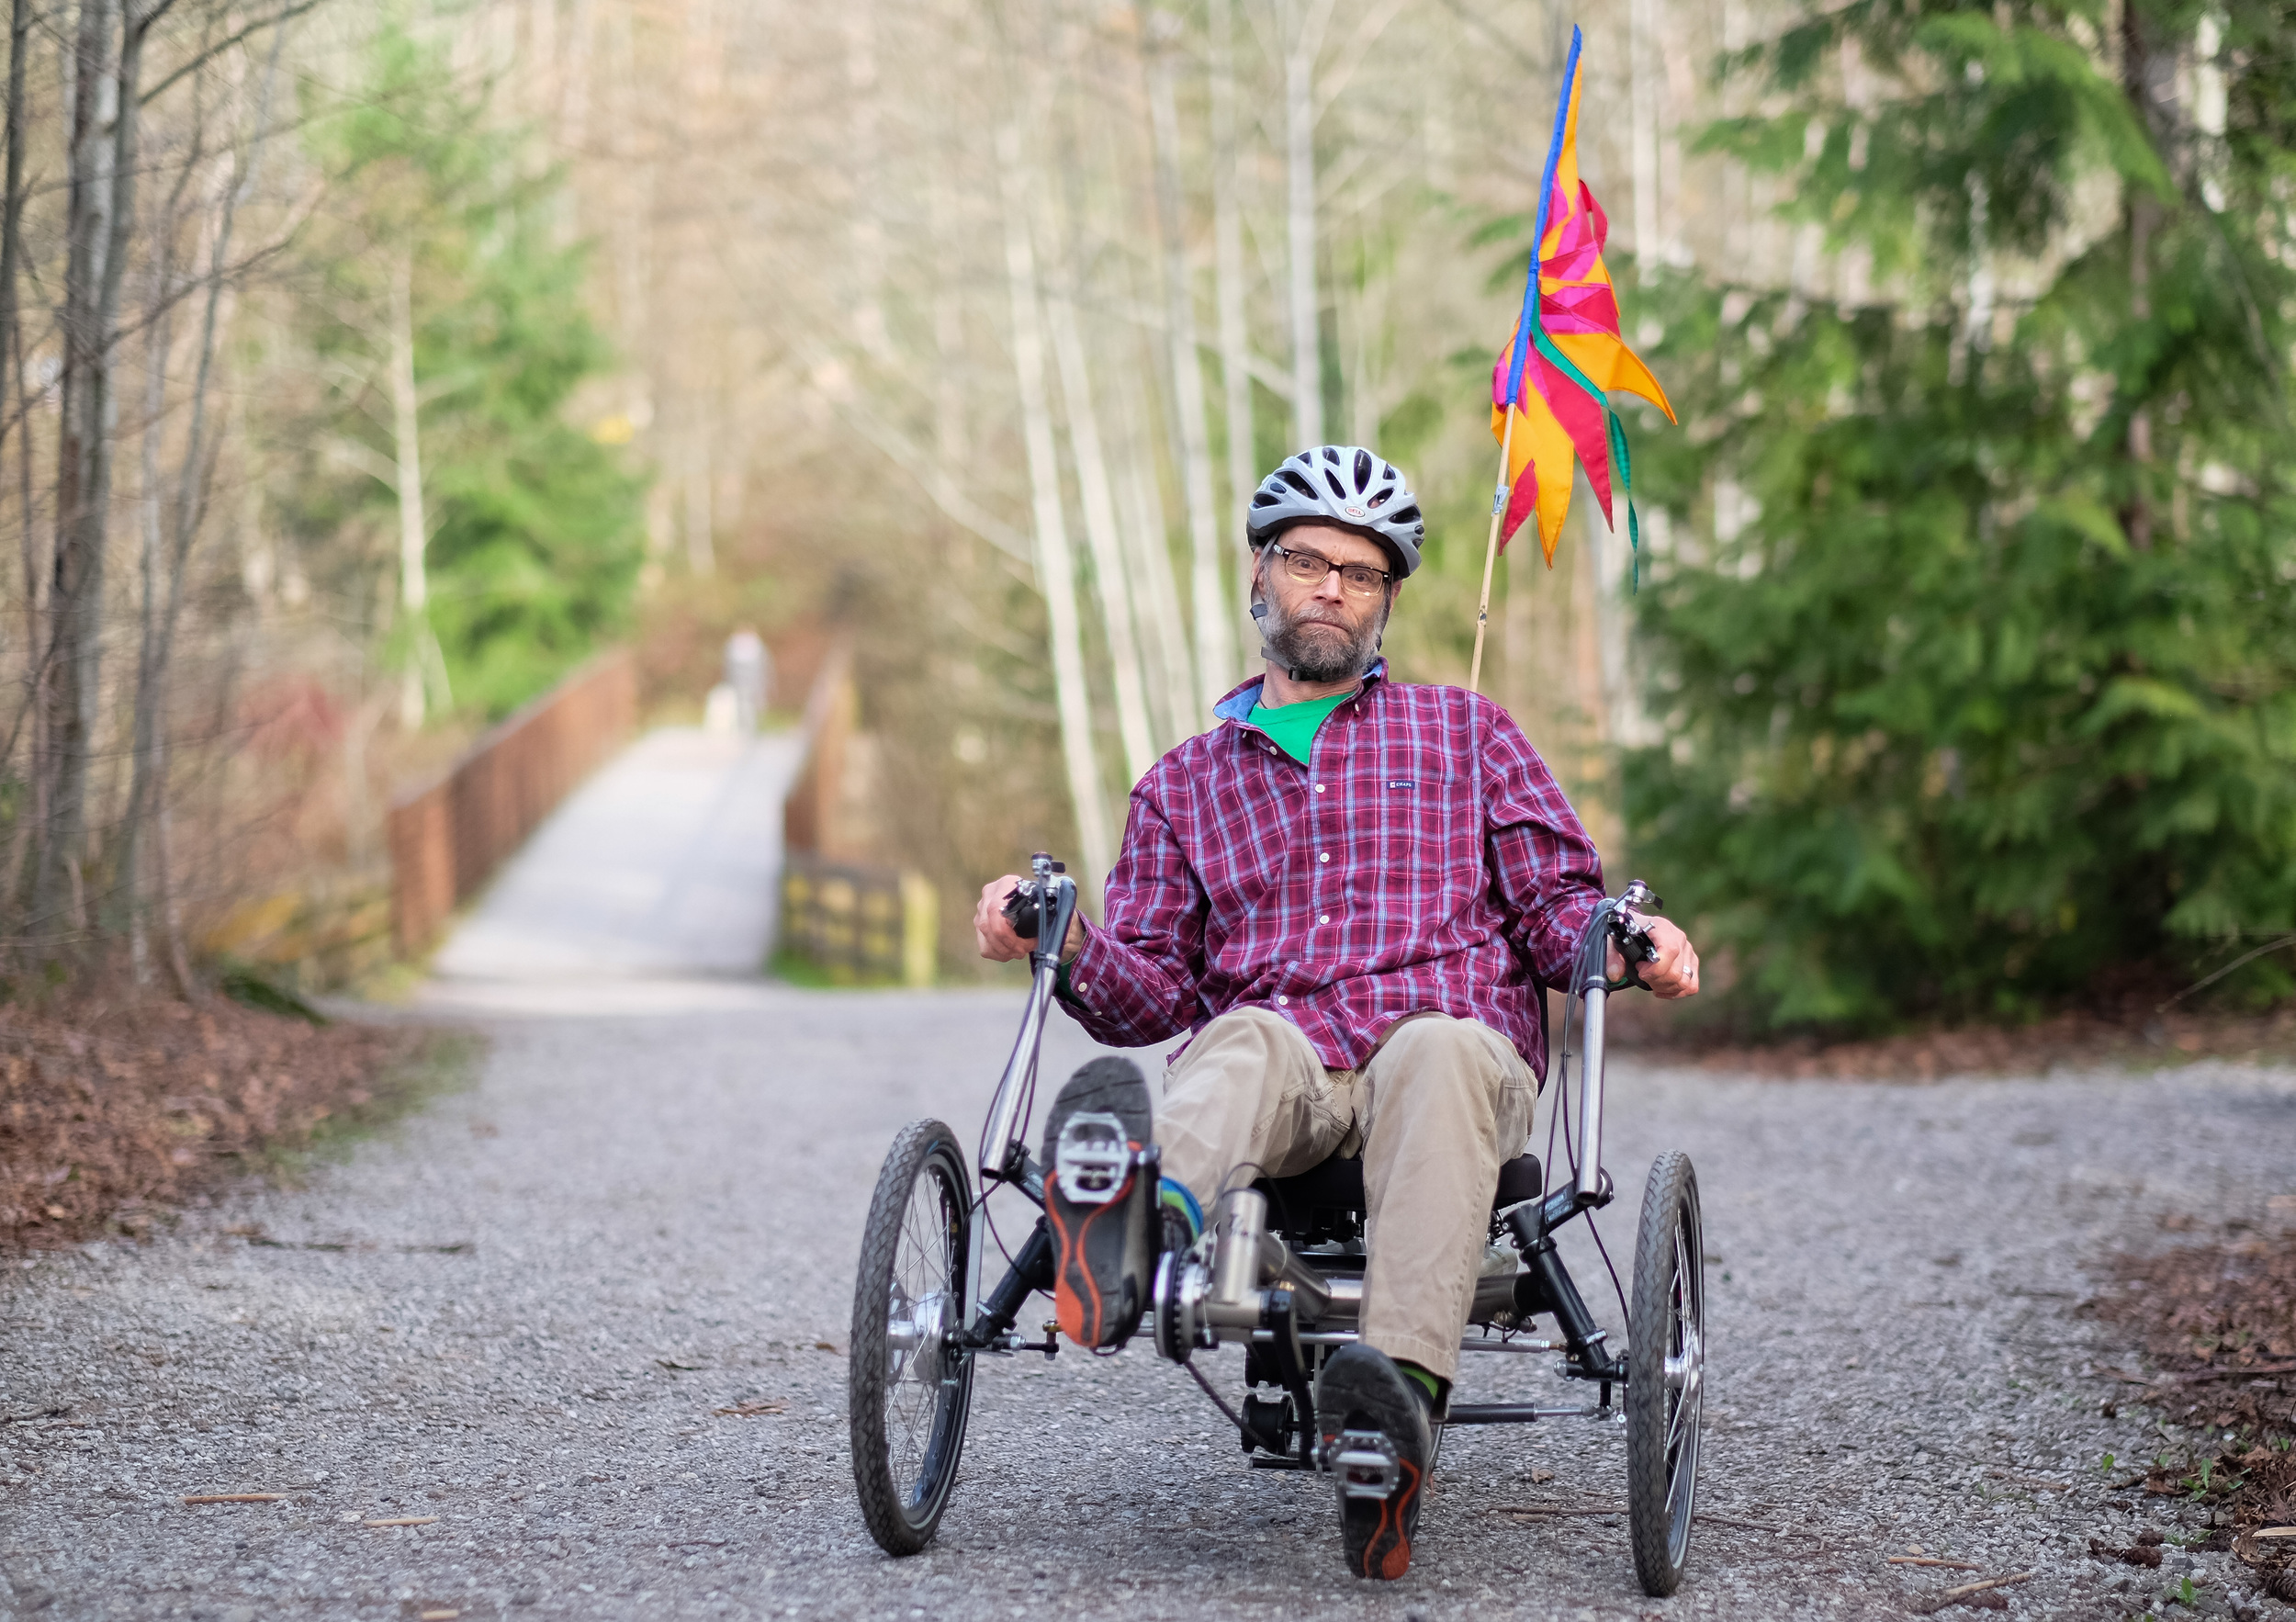 Rick Hermann, 65, poses for a portrait on his recumbent bicycle. Hermann, who has Parkinson's disease, was having increasing difficulty riding his bike until he found recumbent bikes, which help alleviate the stress on the body by placing the seat lower and further back in a reclined position on the bike. For Klipsun Magazine